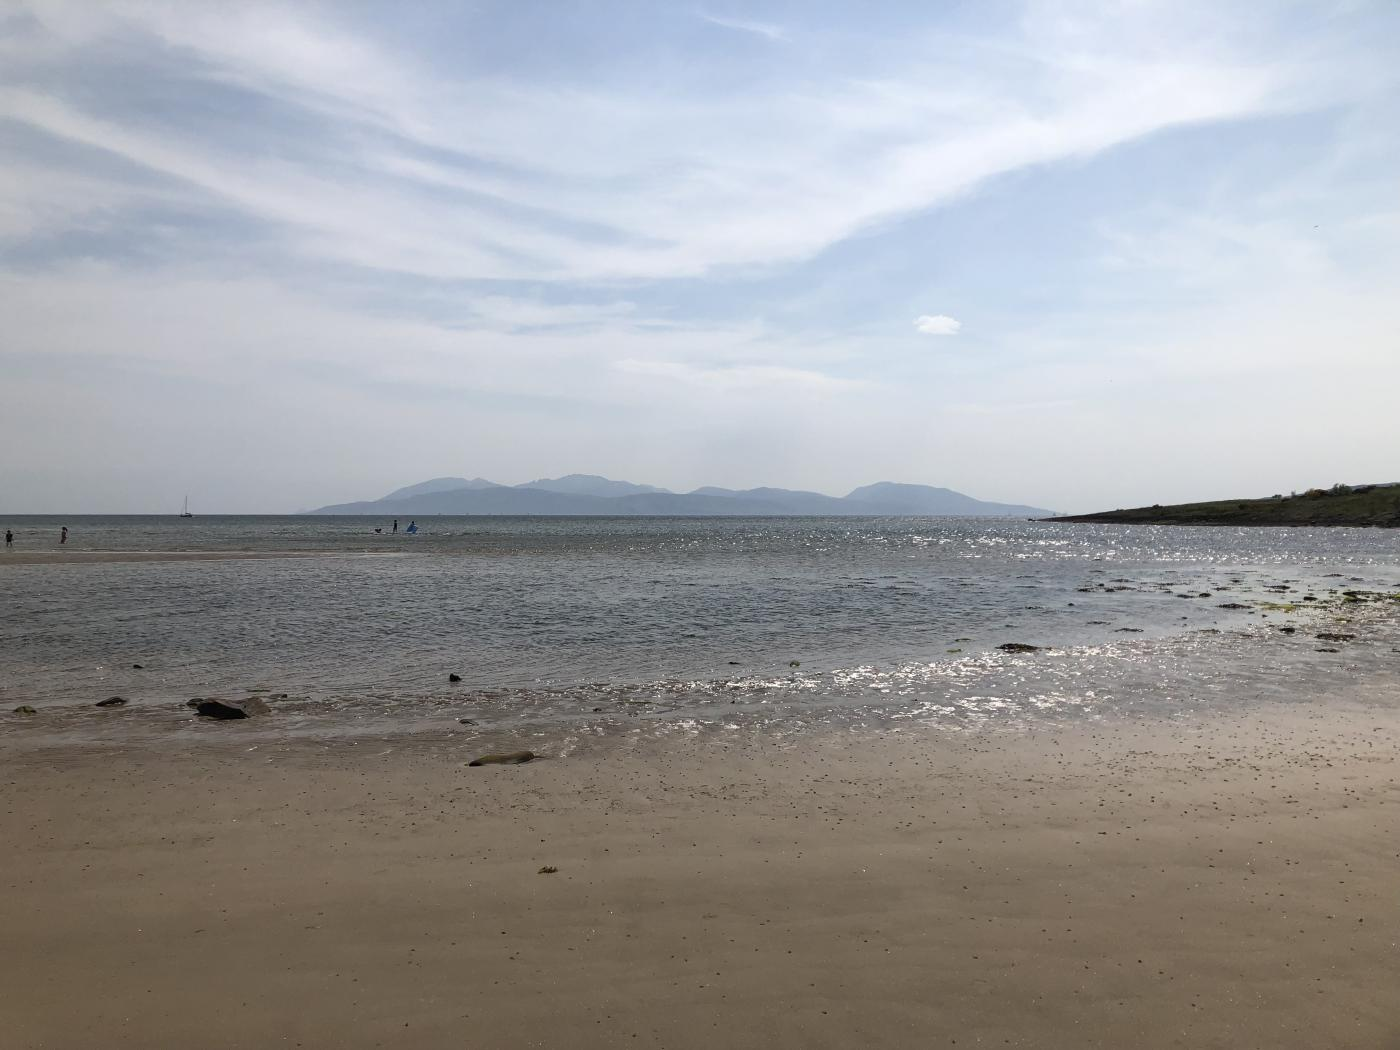 Ostel Bay - Beaches in Scotland